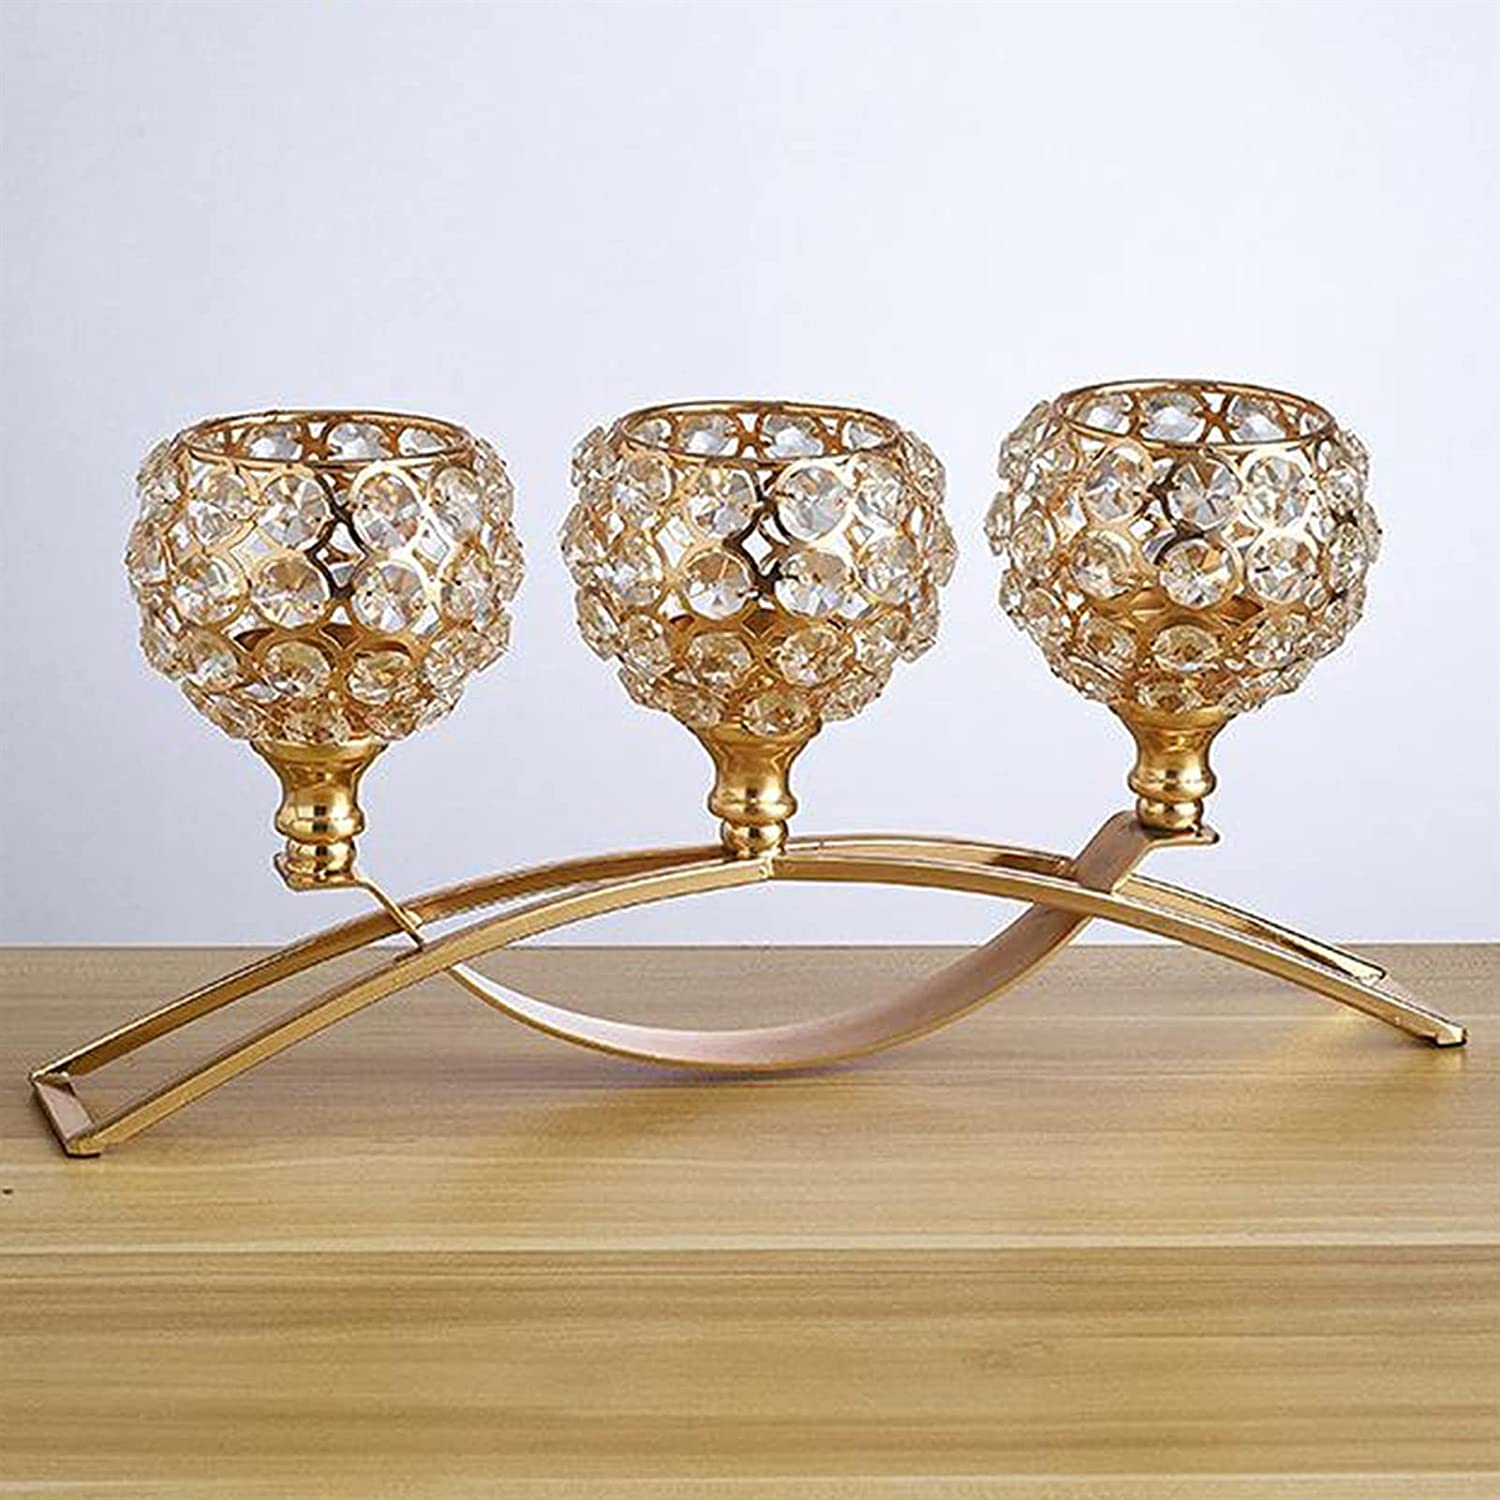 Fort Worth Mall GLADMIN 3 Crystal Arch Bridge Holders Bowl Candle Tealigh Goblet overseas